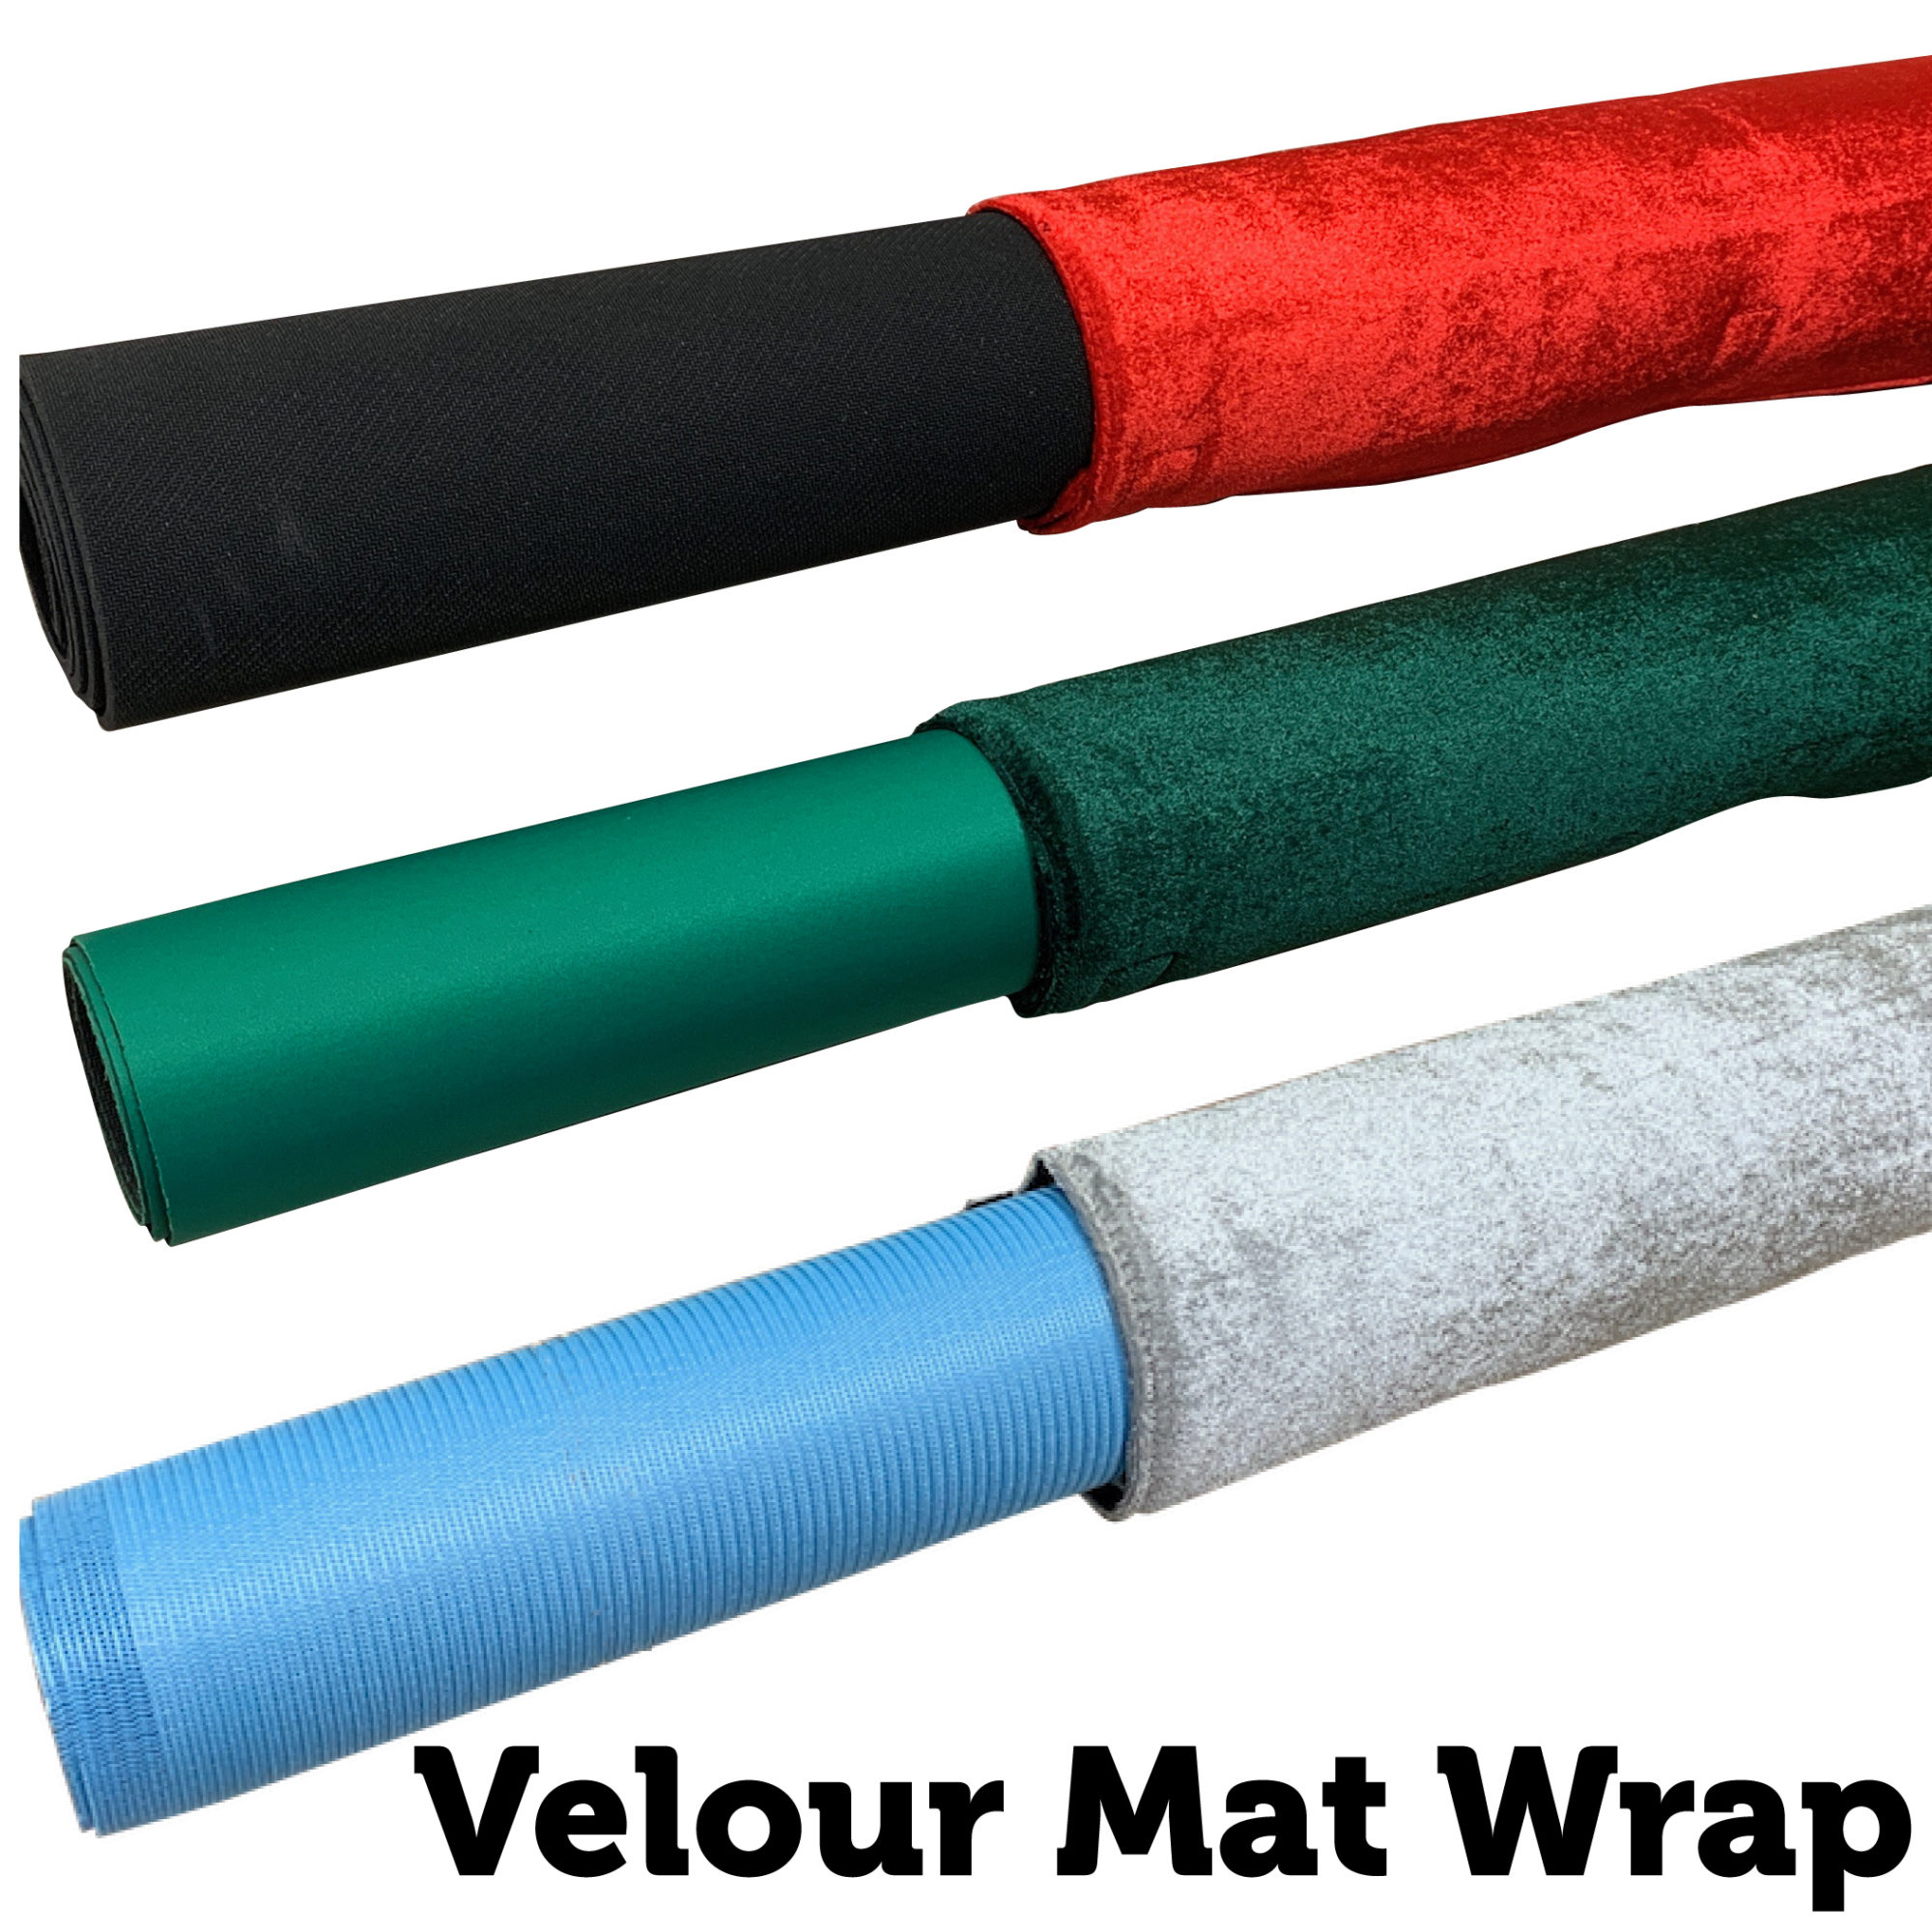 Mah Jongg Mat Wrap - Mah Jongg Table Cover Wrap / Holder